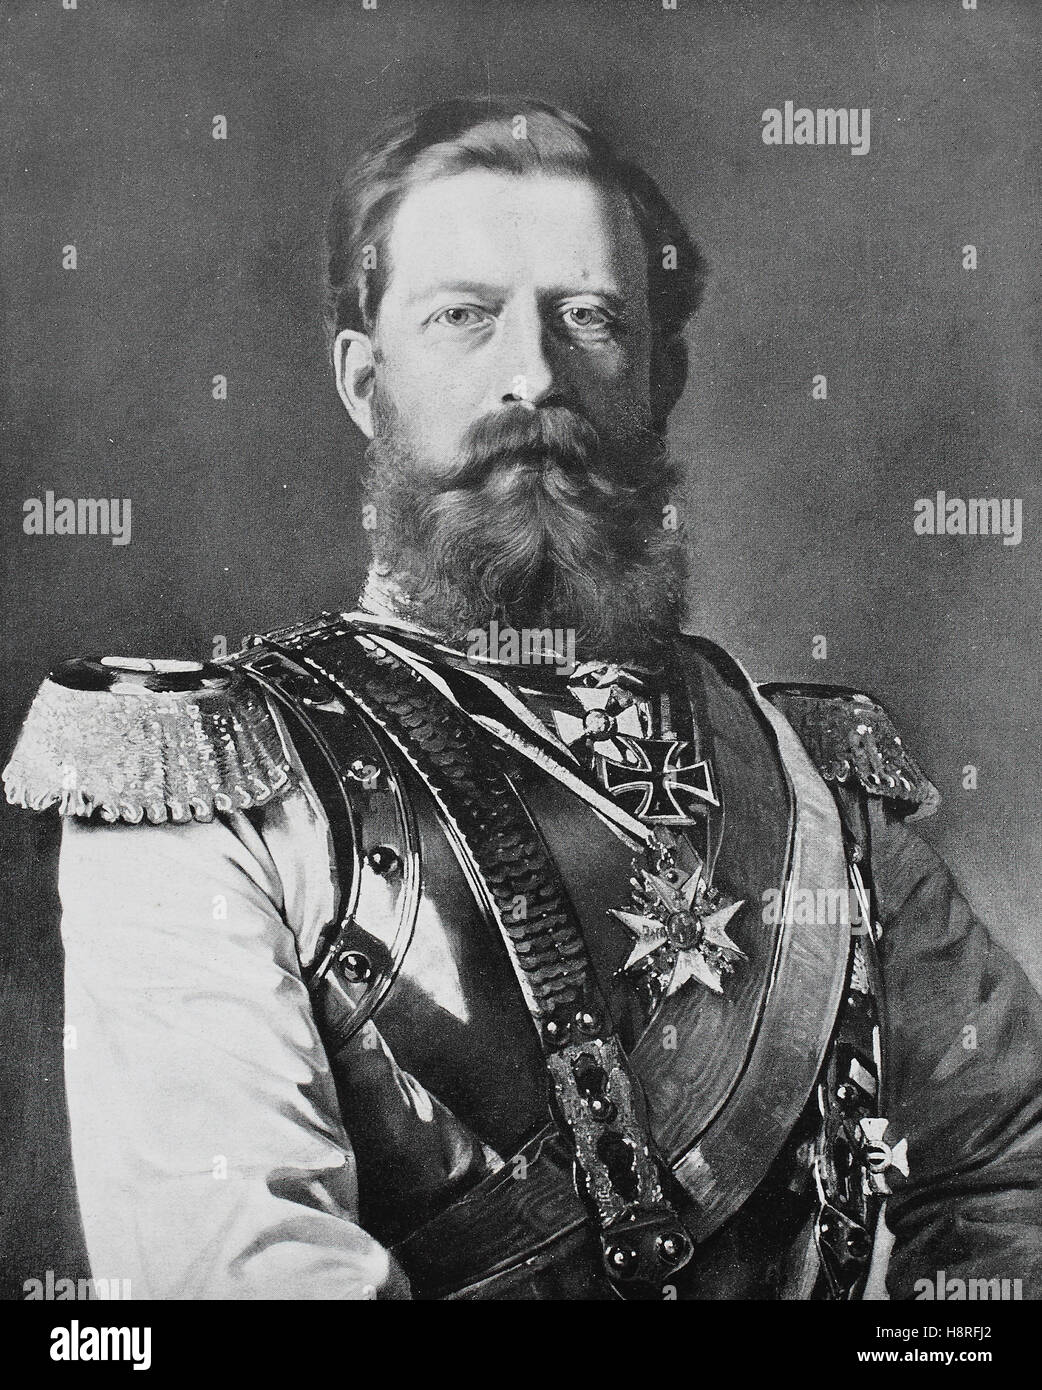 Frederick III., called the Peaceful, was Holy Roman Emperor from 1452 until his death - Stock Image